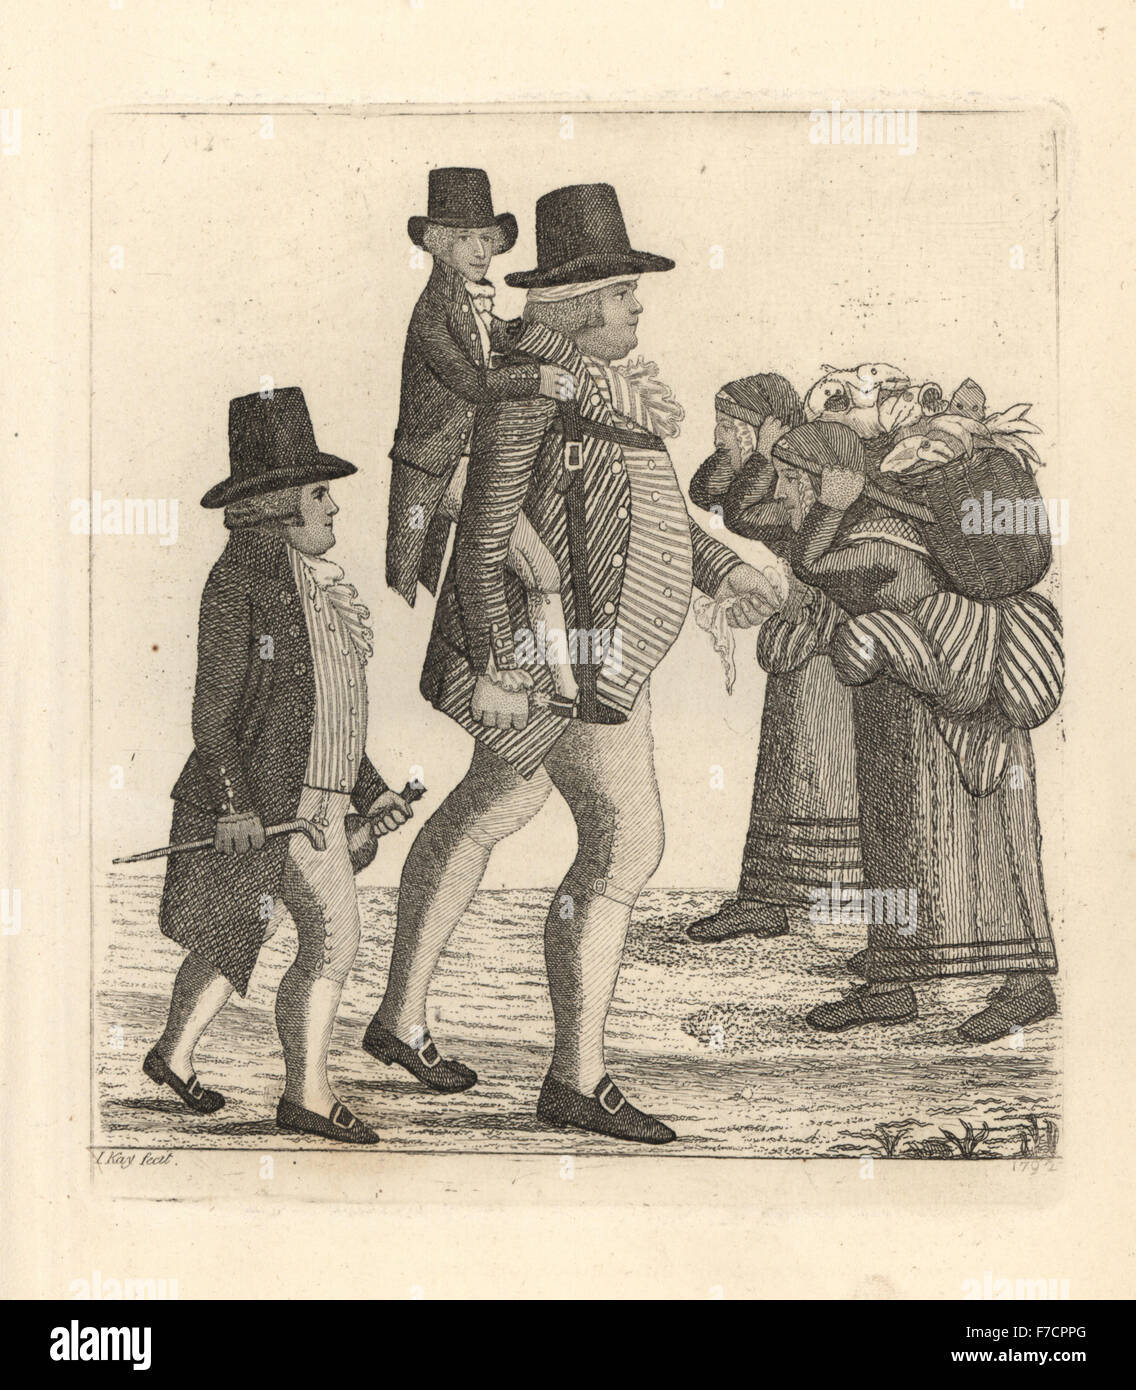 Hamilton Bell carrying a vintner's boy from Edinburgh to Musselbough accompanied by John Rae, as part of a bet. - Stock Image